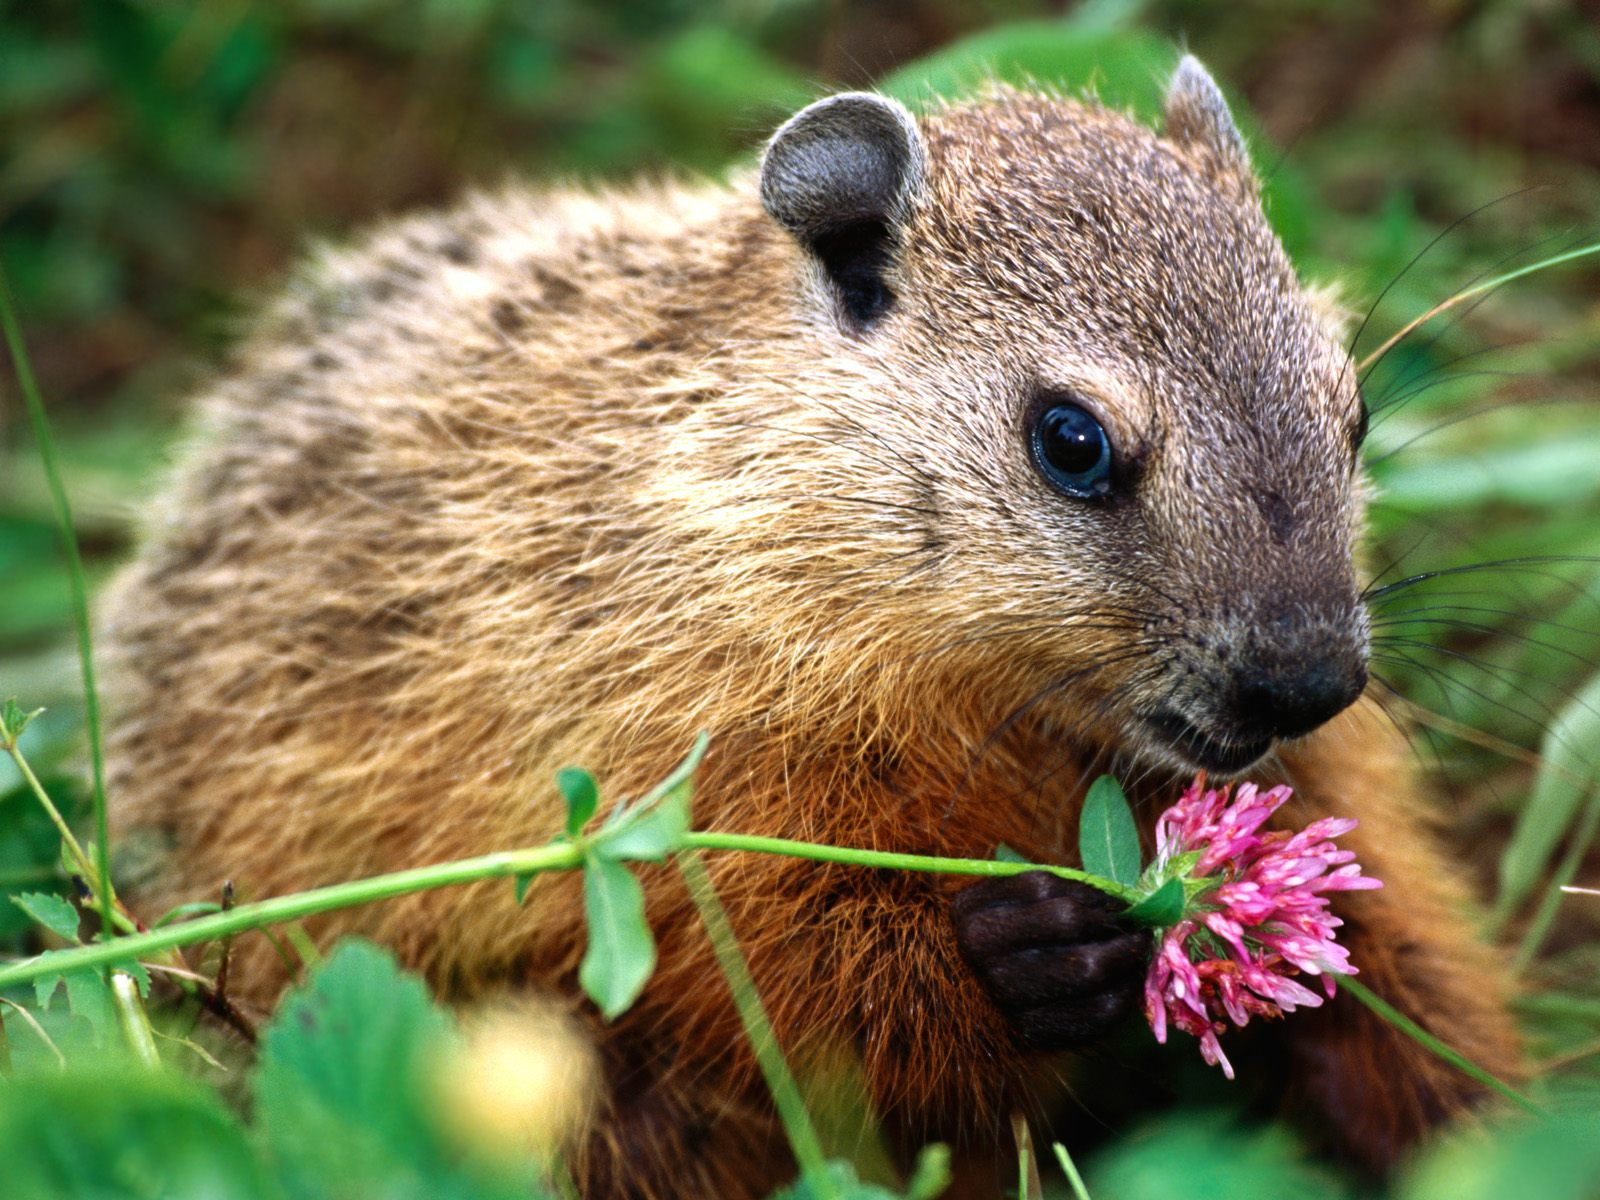 http://2.bp.blogspot.com/-sadnFbYGXQw/UO65hcfg30I/AAAAAAAABGM/JqpVMs-ZSDQ/s1600/woodchuck-with-a-pink-flower-cute-animals-pictures.Jpg